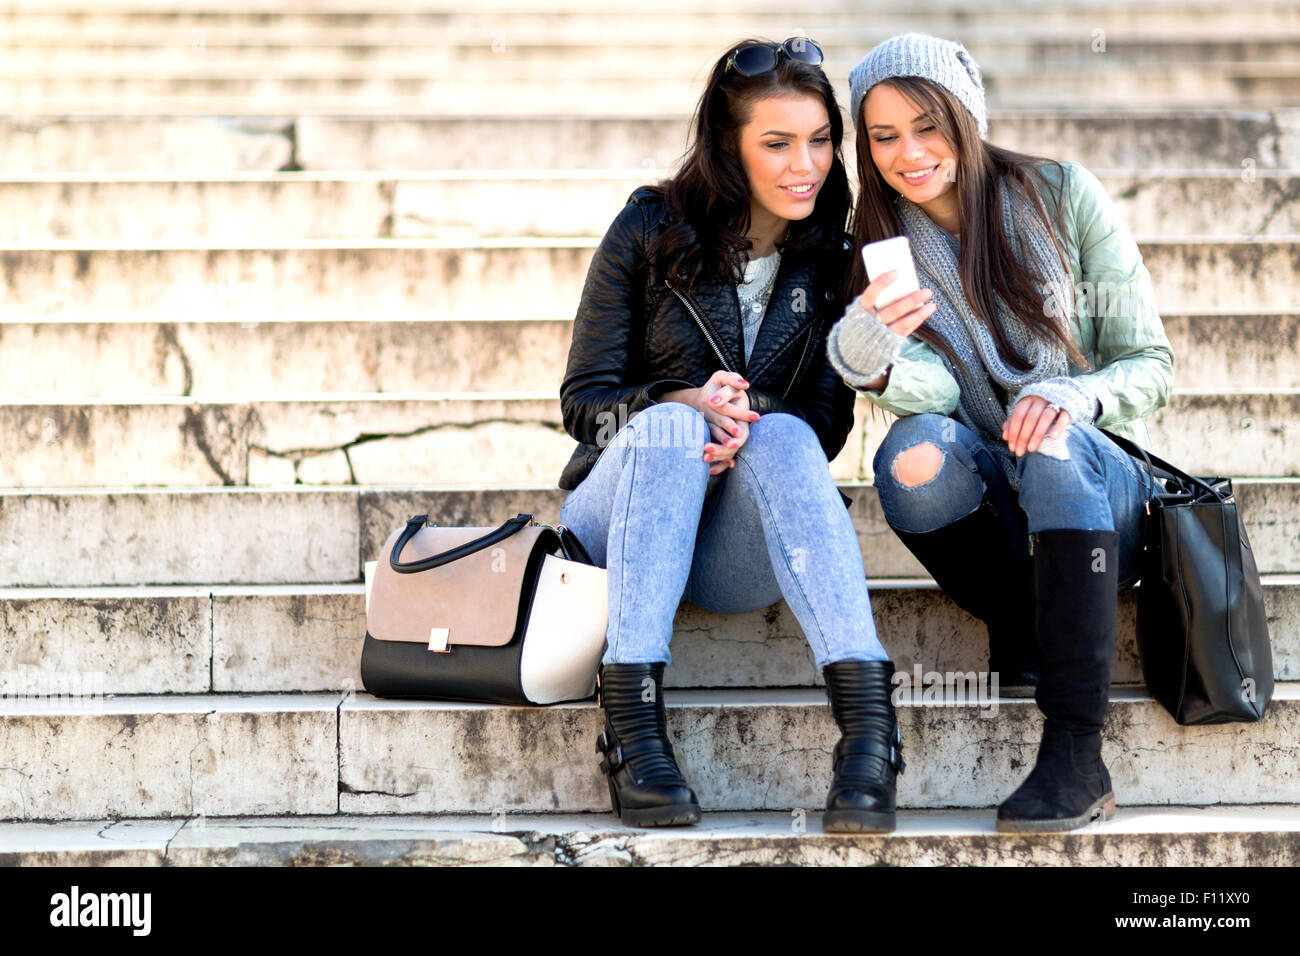 Two young and beautiful women sitting at the stairs and taking a selfie - Stock Image